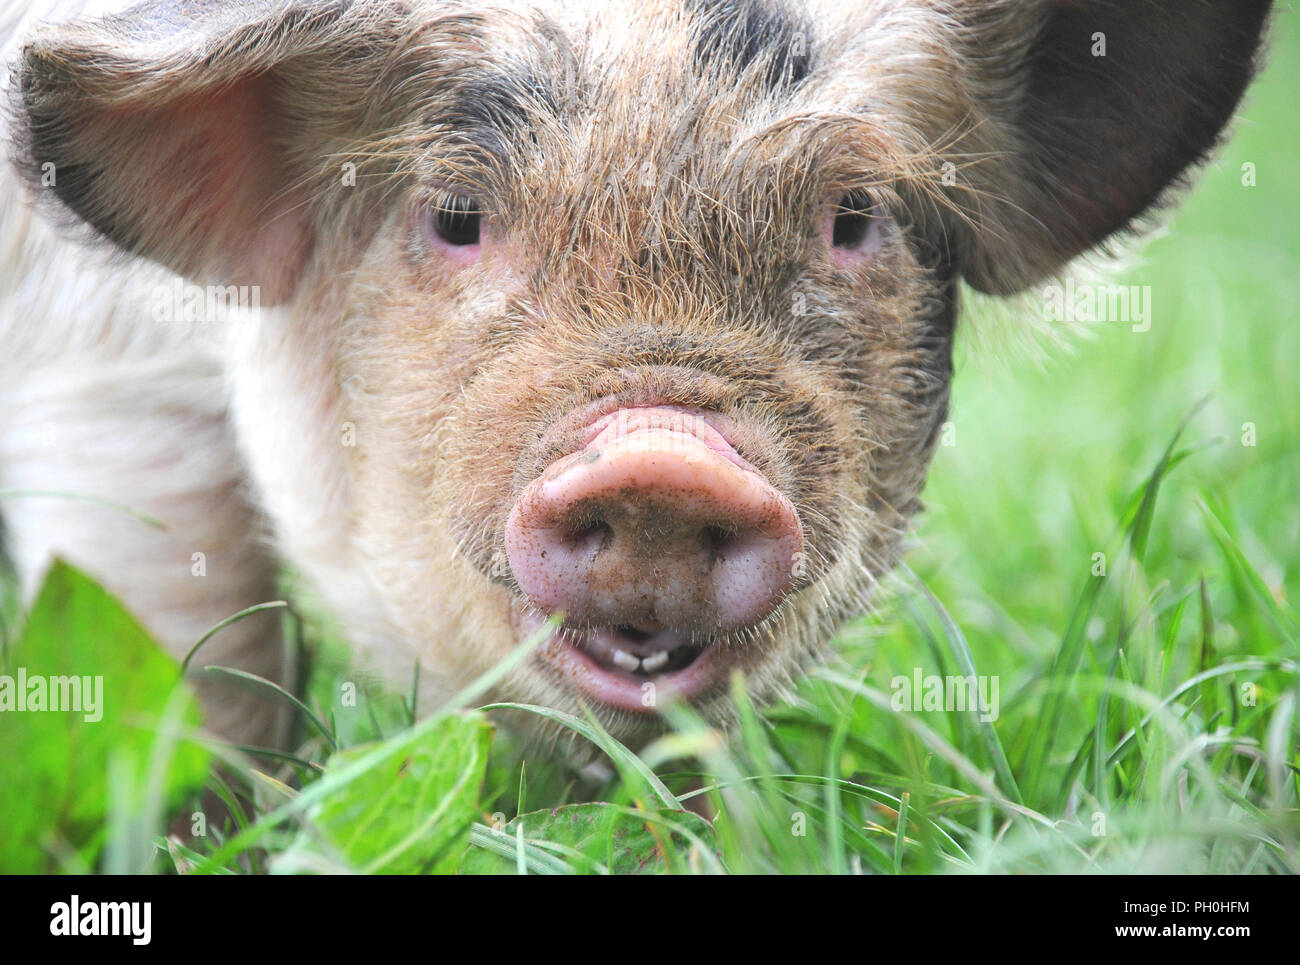 close up of a cute young kune kune piglet in a field - Stock Image